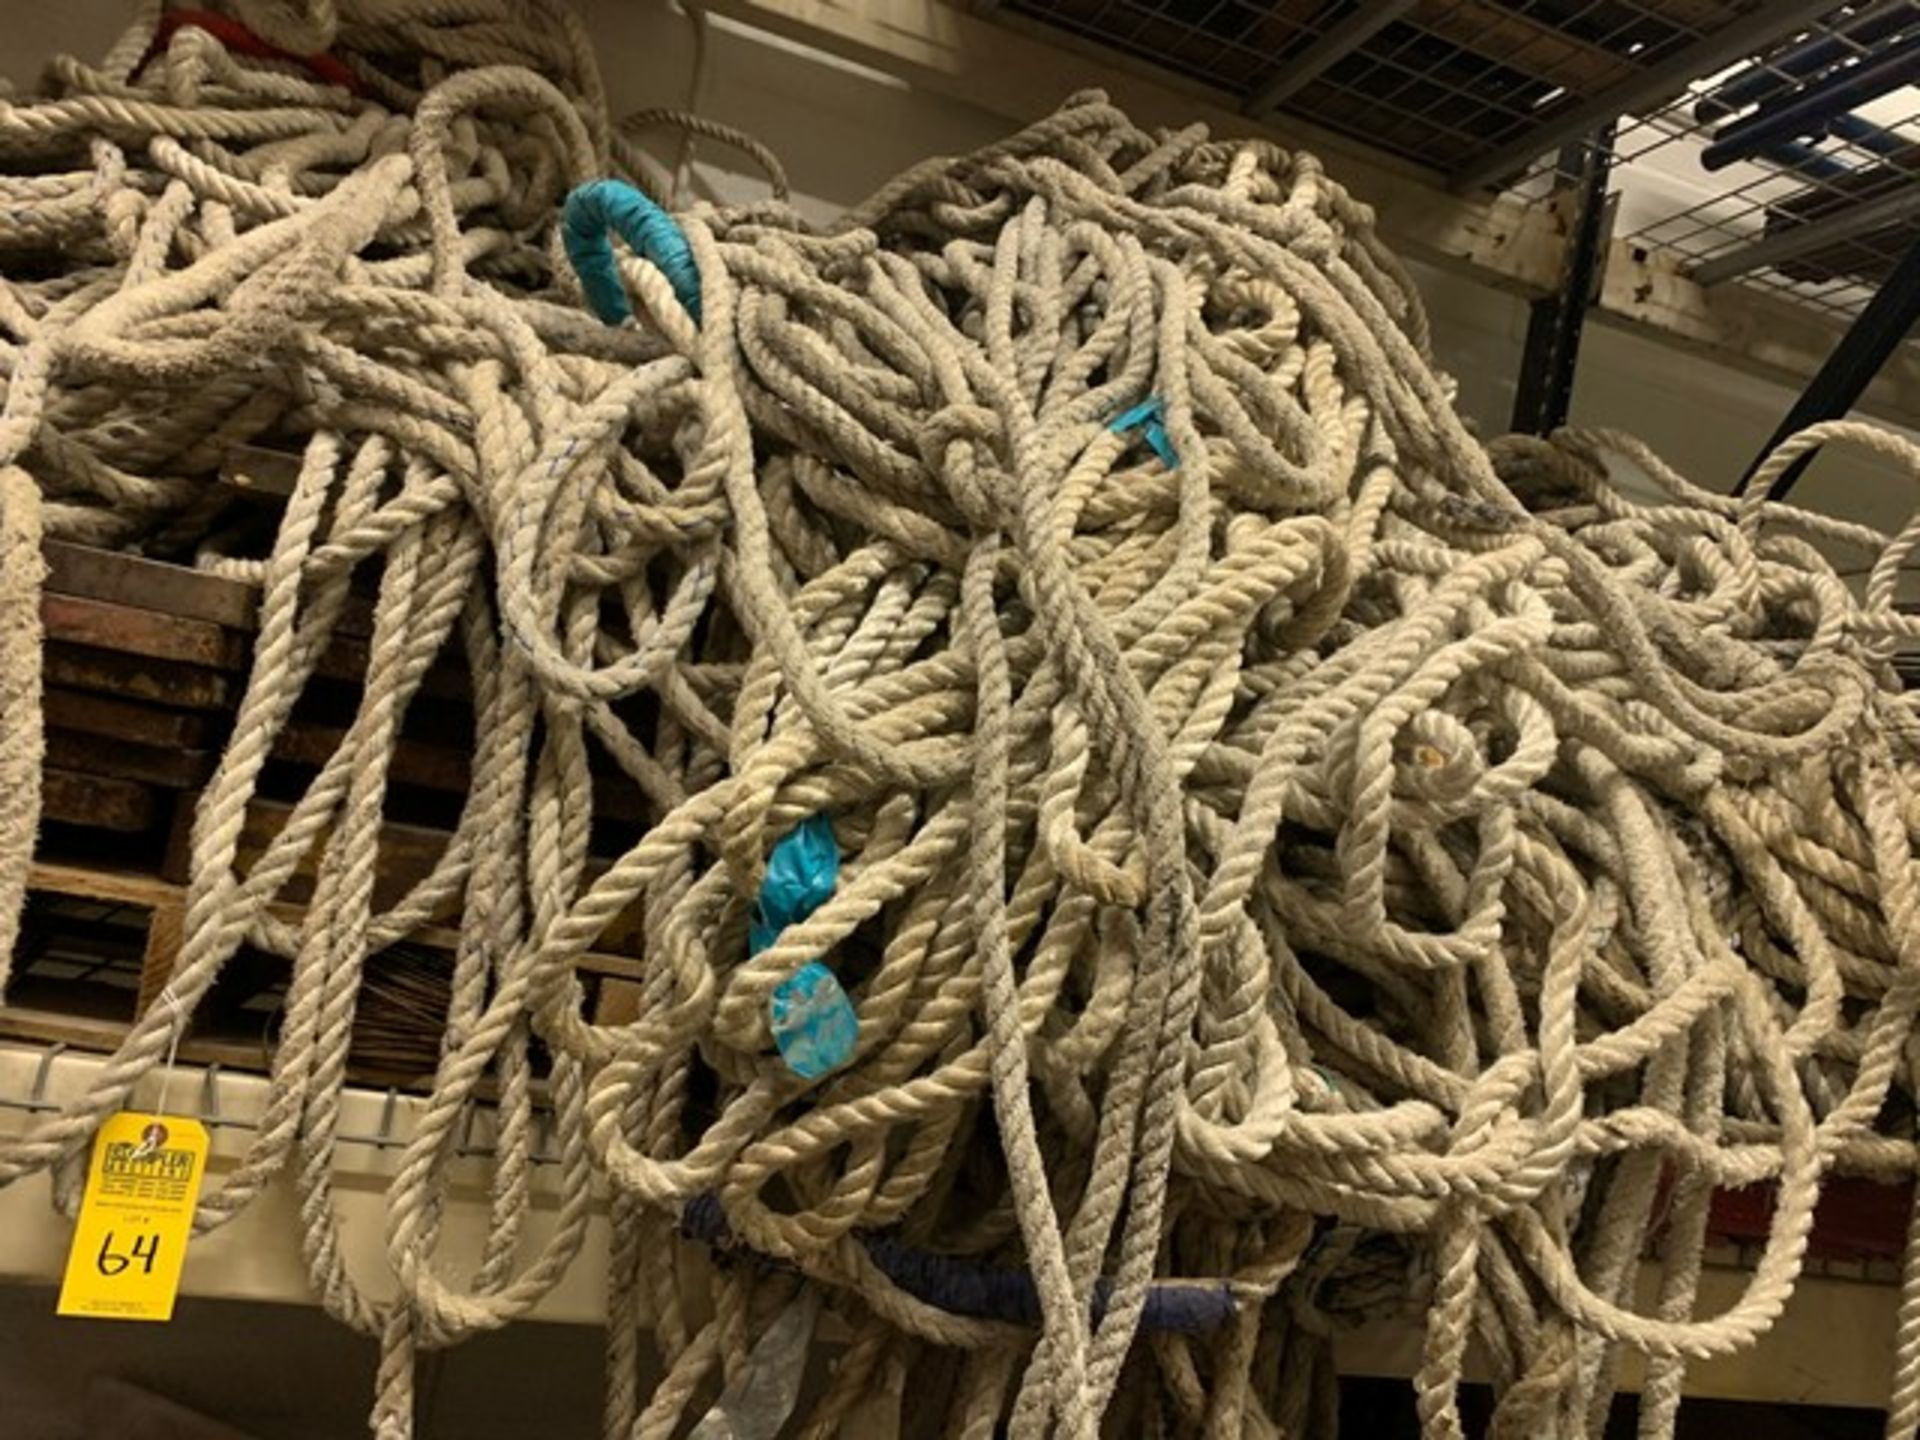 Lot 64 - LARGE LOT SAFETY ROPE